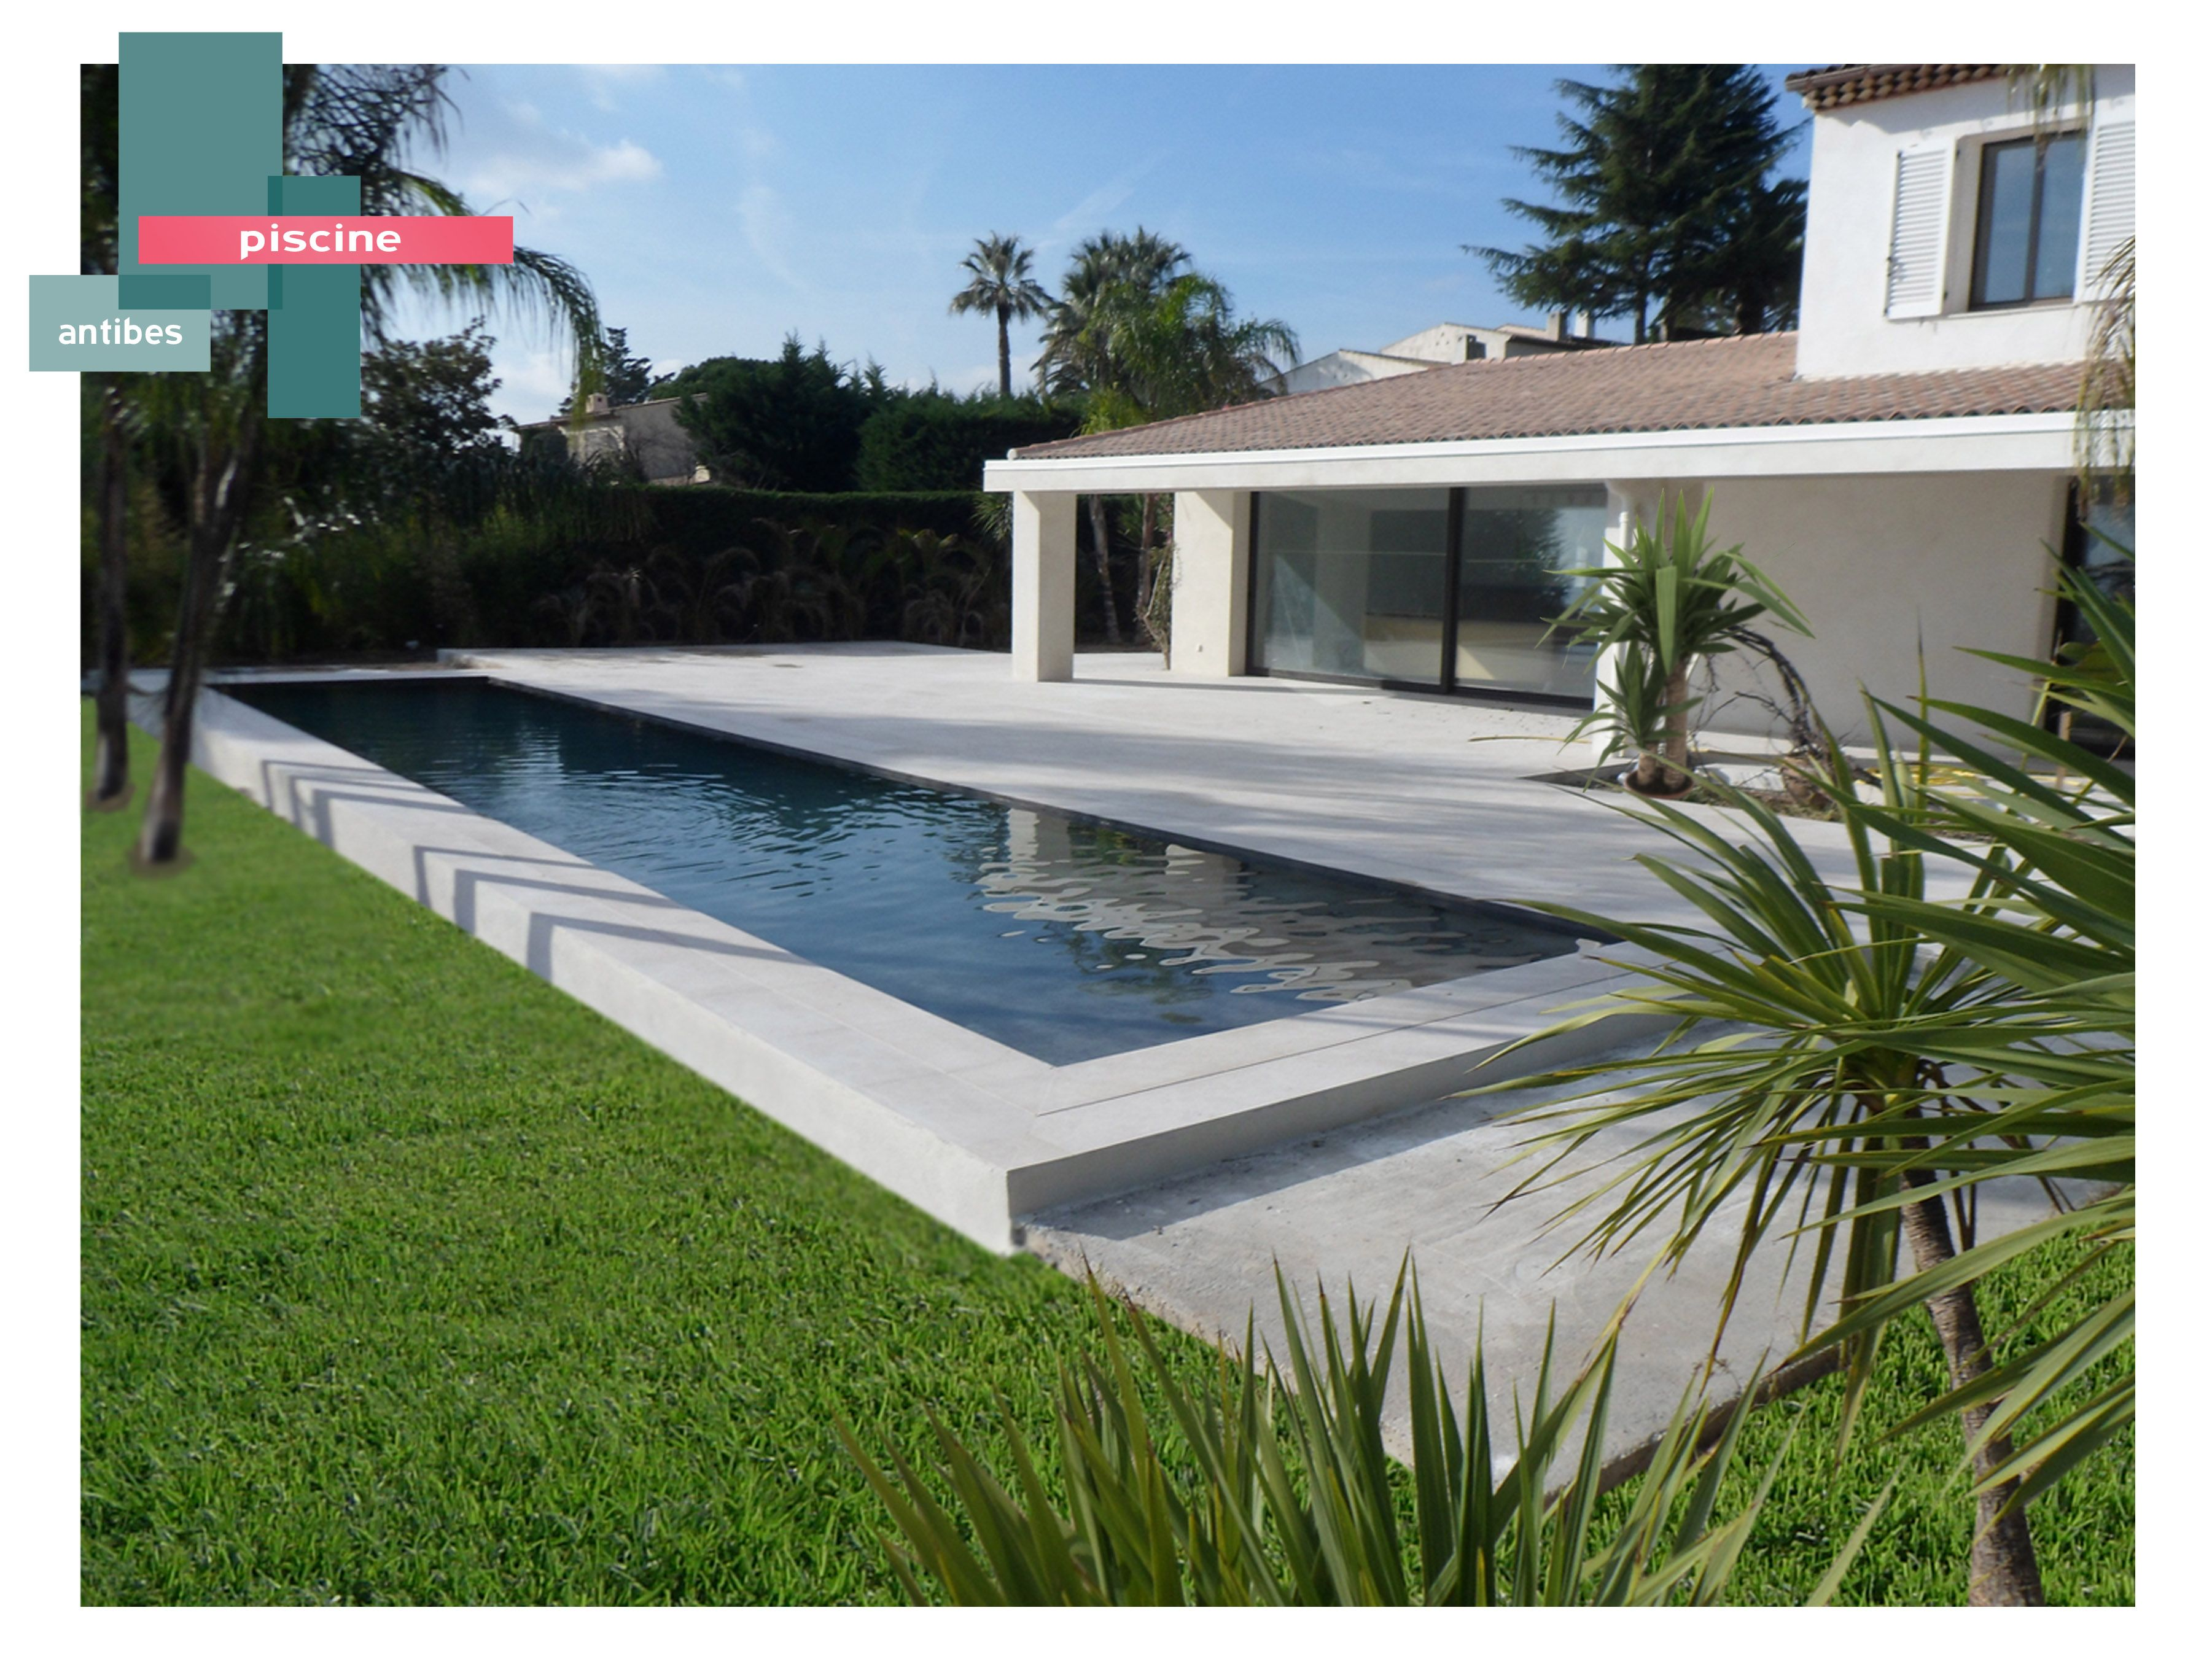 Decoration exterieur piscine perfect dco amenagement autour piscine amiens image photo - Amenagement bassin aquatique amiens ...